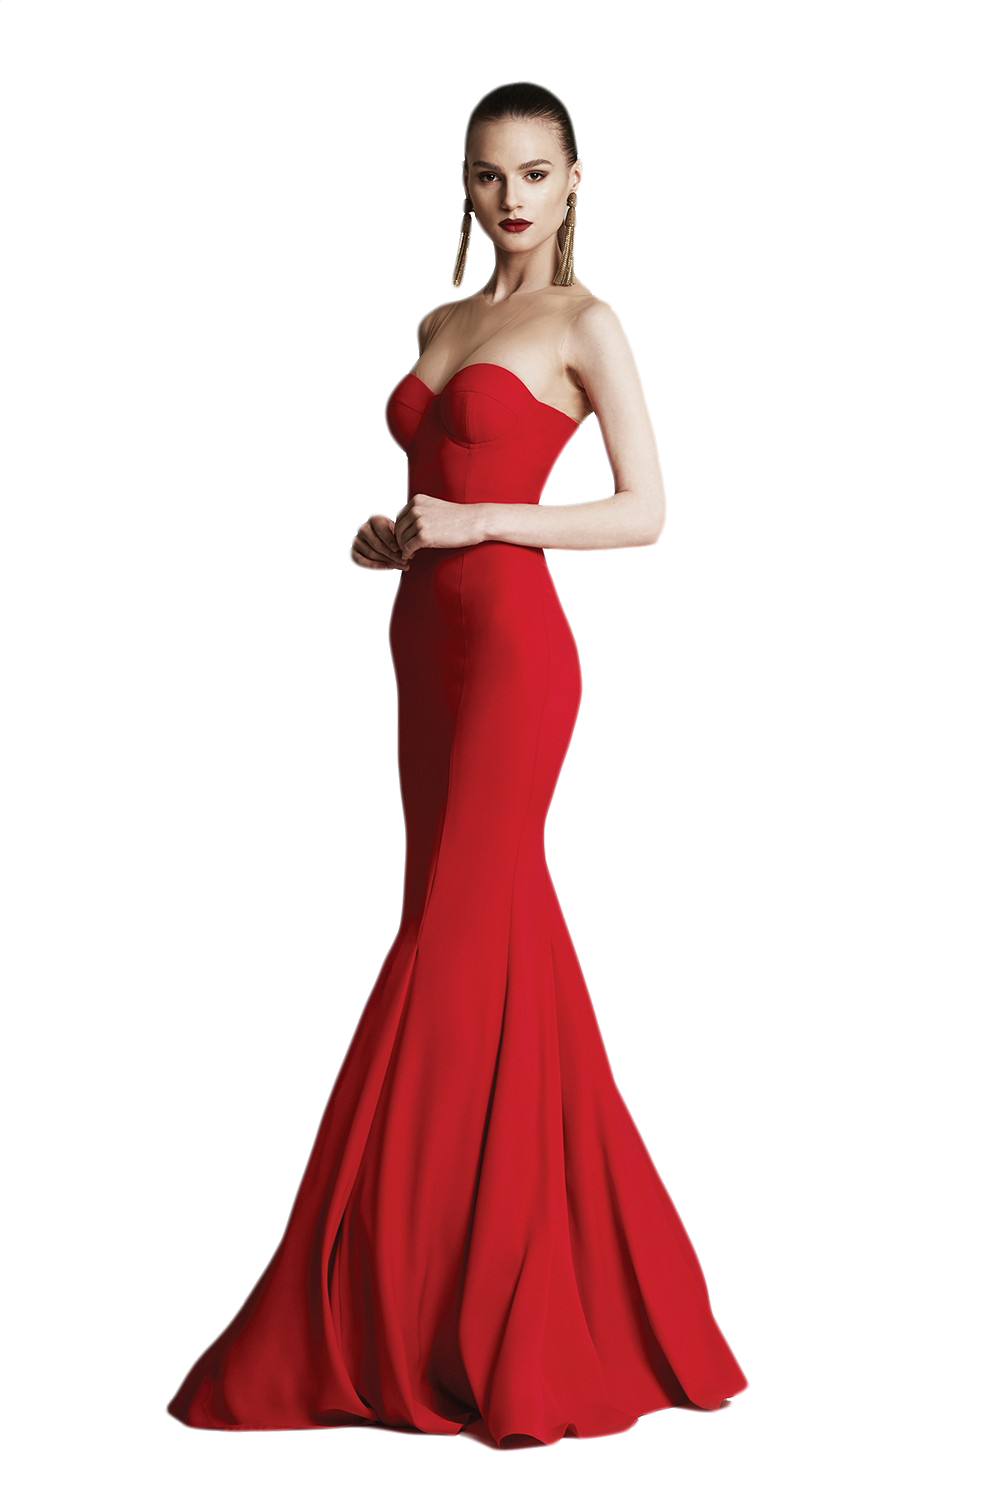 girl in the red dress png by msoranzhevaya on deviantart